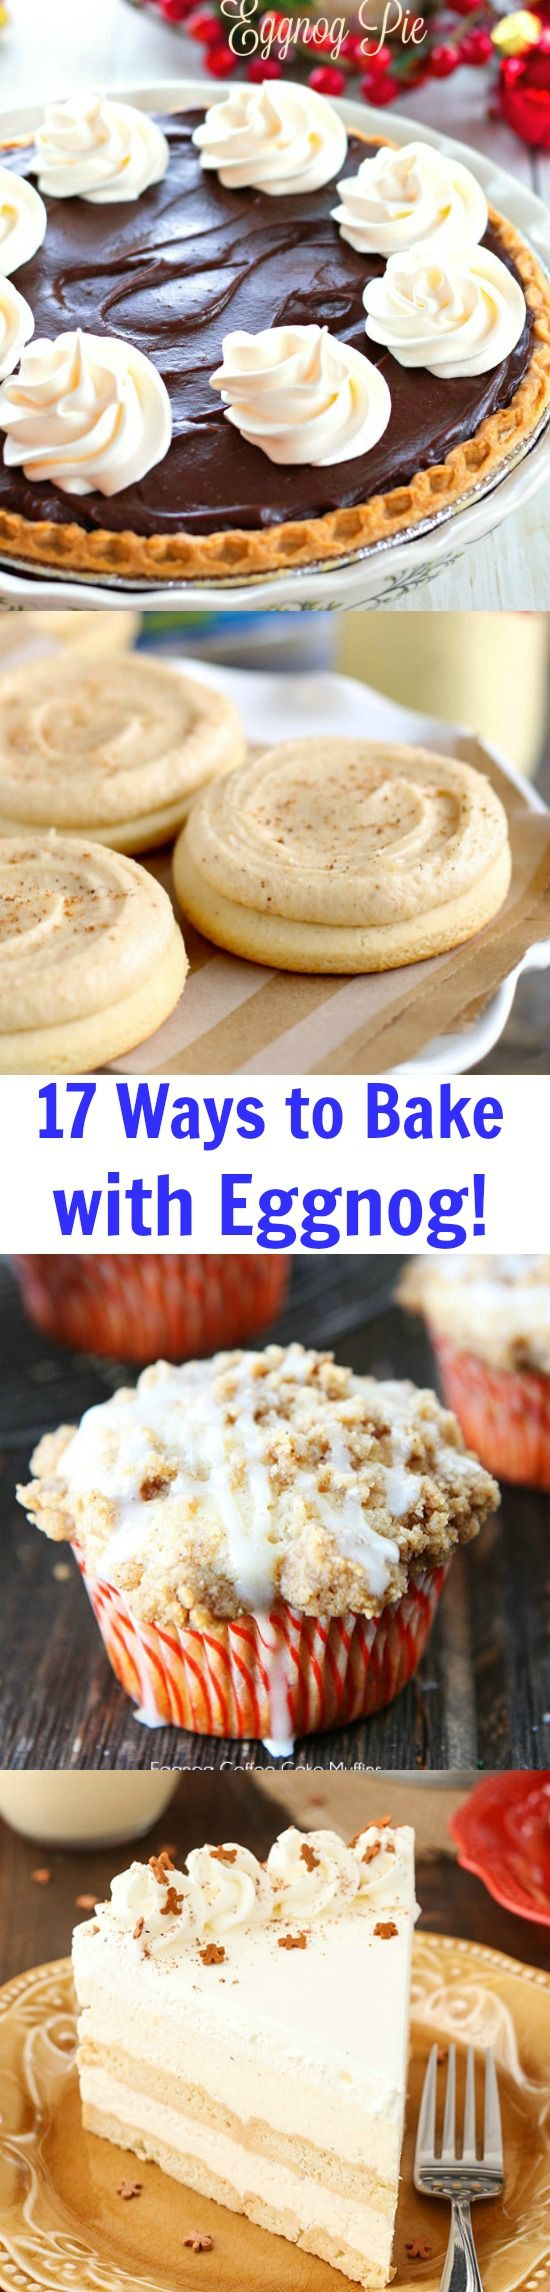 17 Incredibly Delicious Recipes Using Eggnog! I don't even like to drink eggnog and I have made many of these and LOVE them!!!